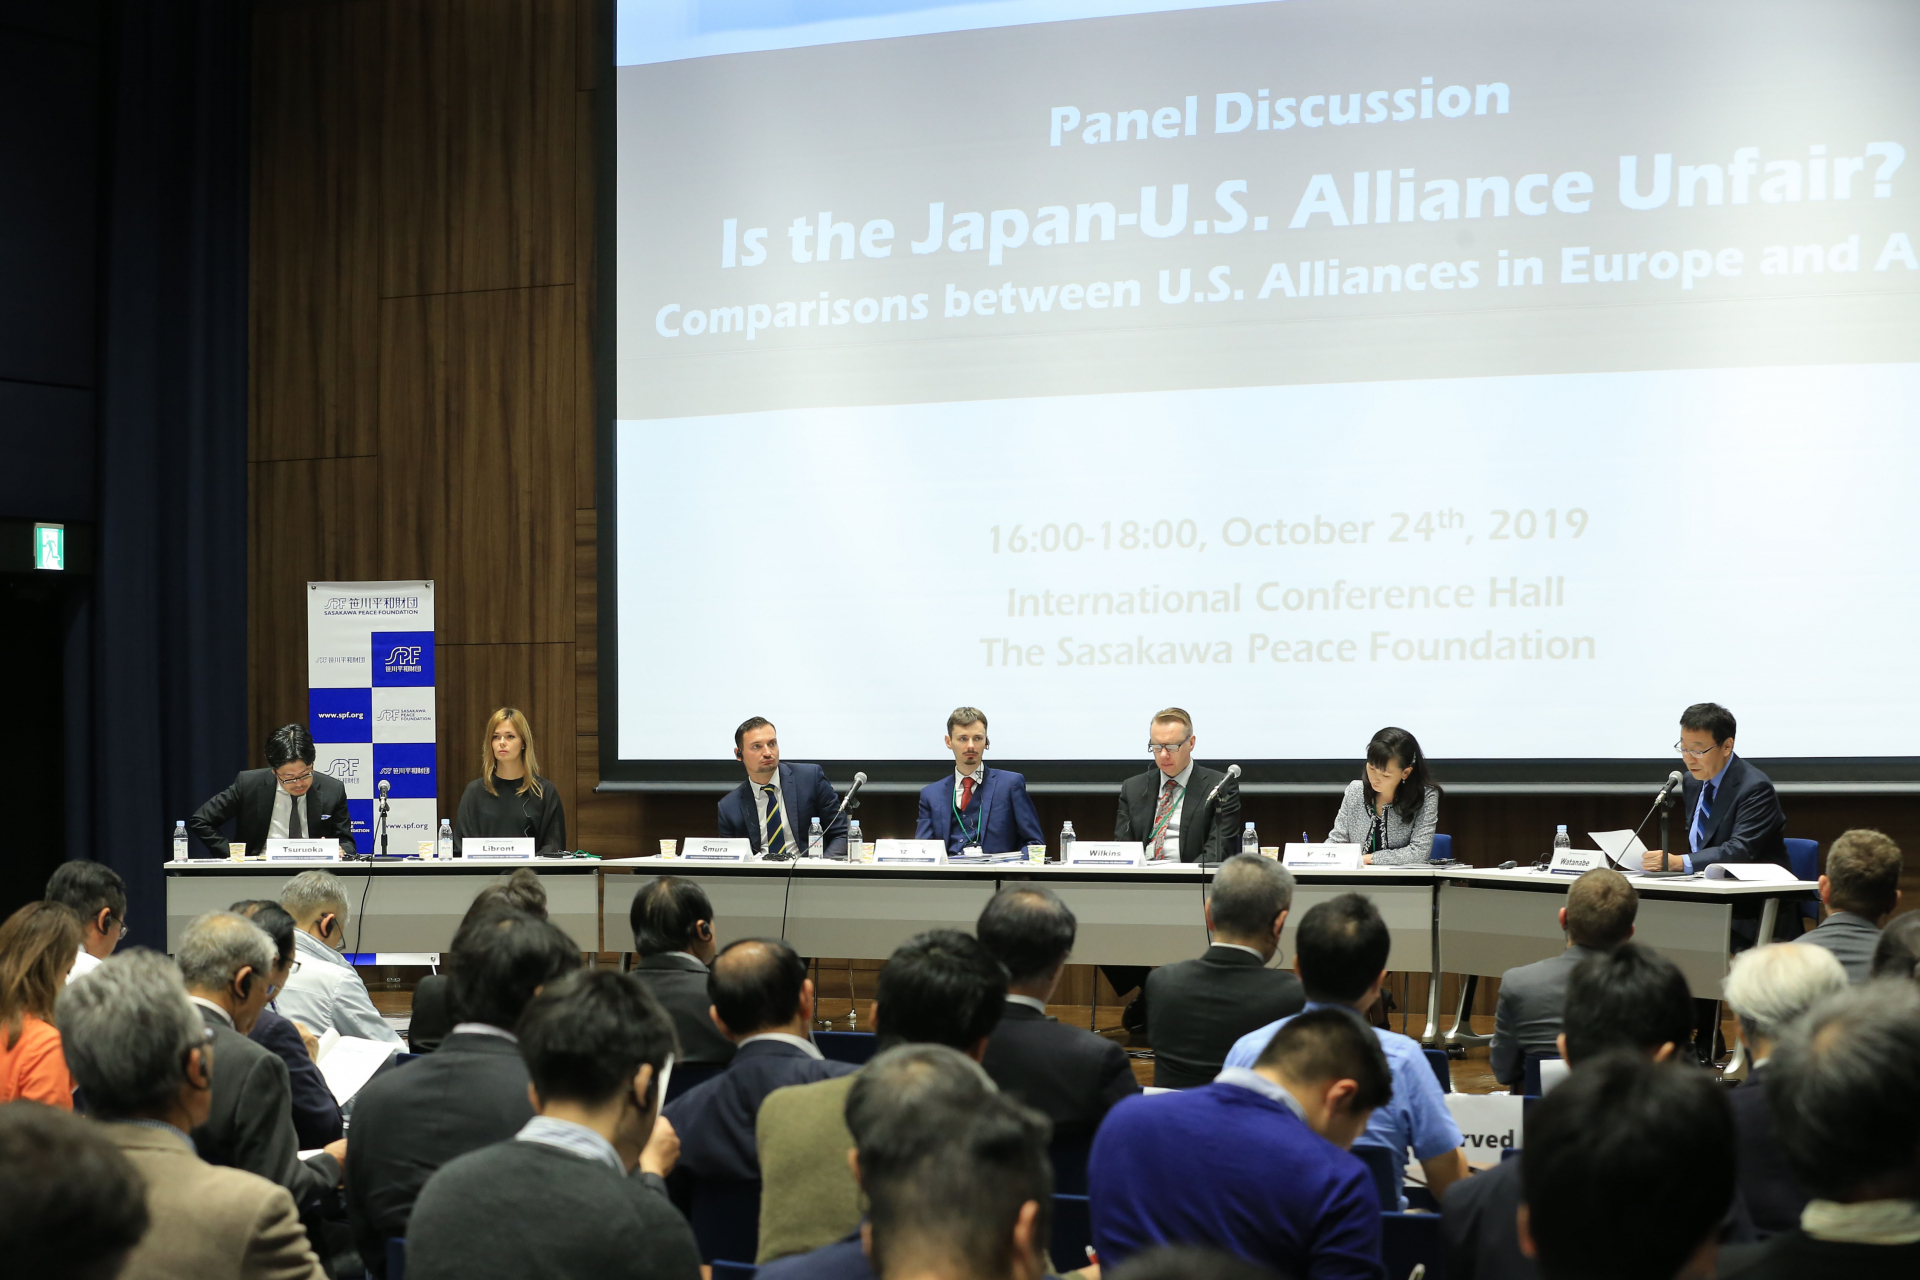 Is the Japan-U.S. Alliance Unfair? Comparisons between U.S. Alliances in Europe and Asia